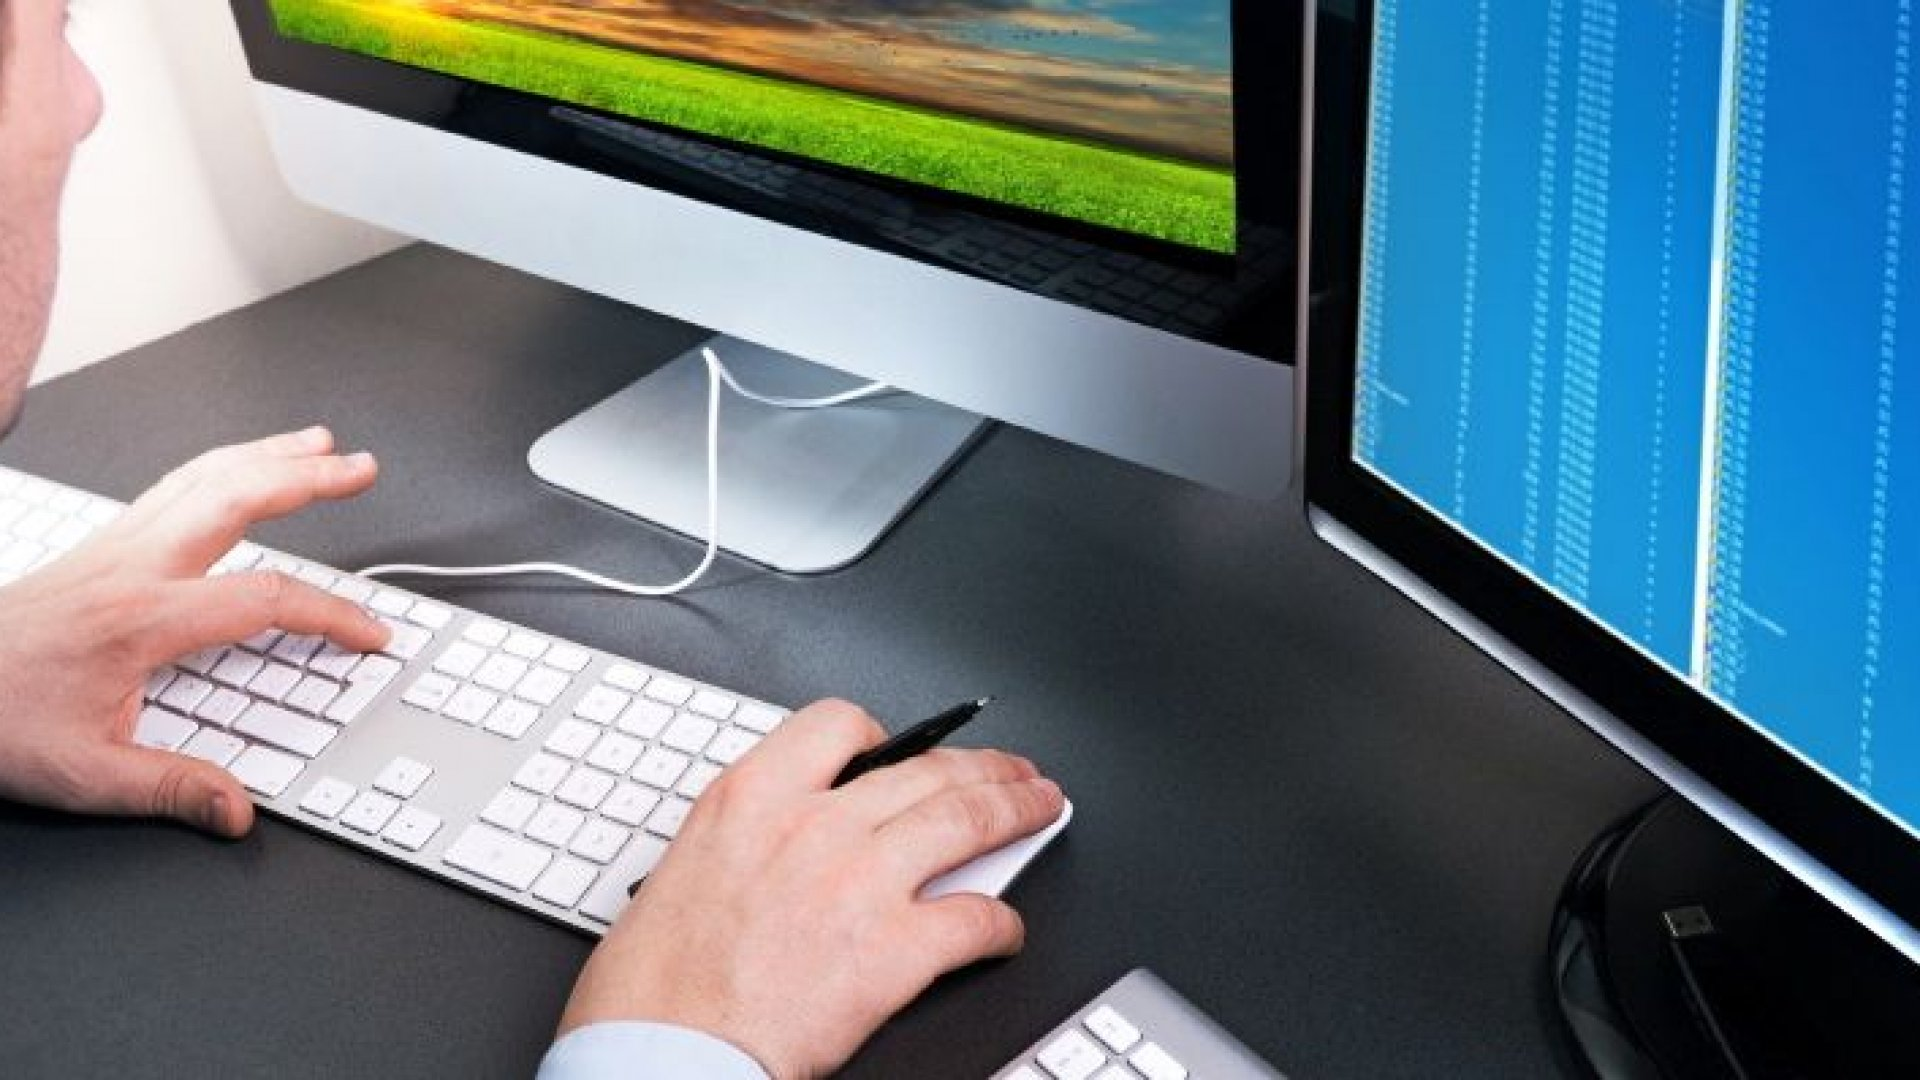 Redesigning Your Website in 2012? Ask These 3 Questions First